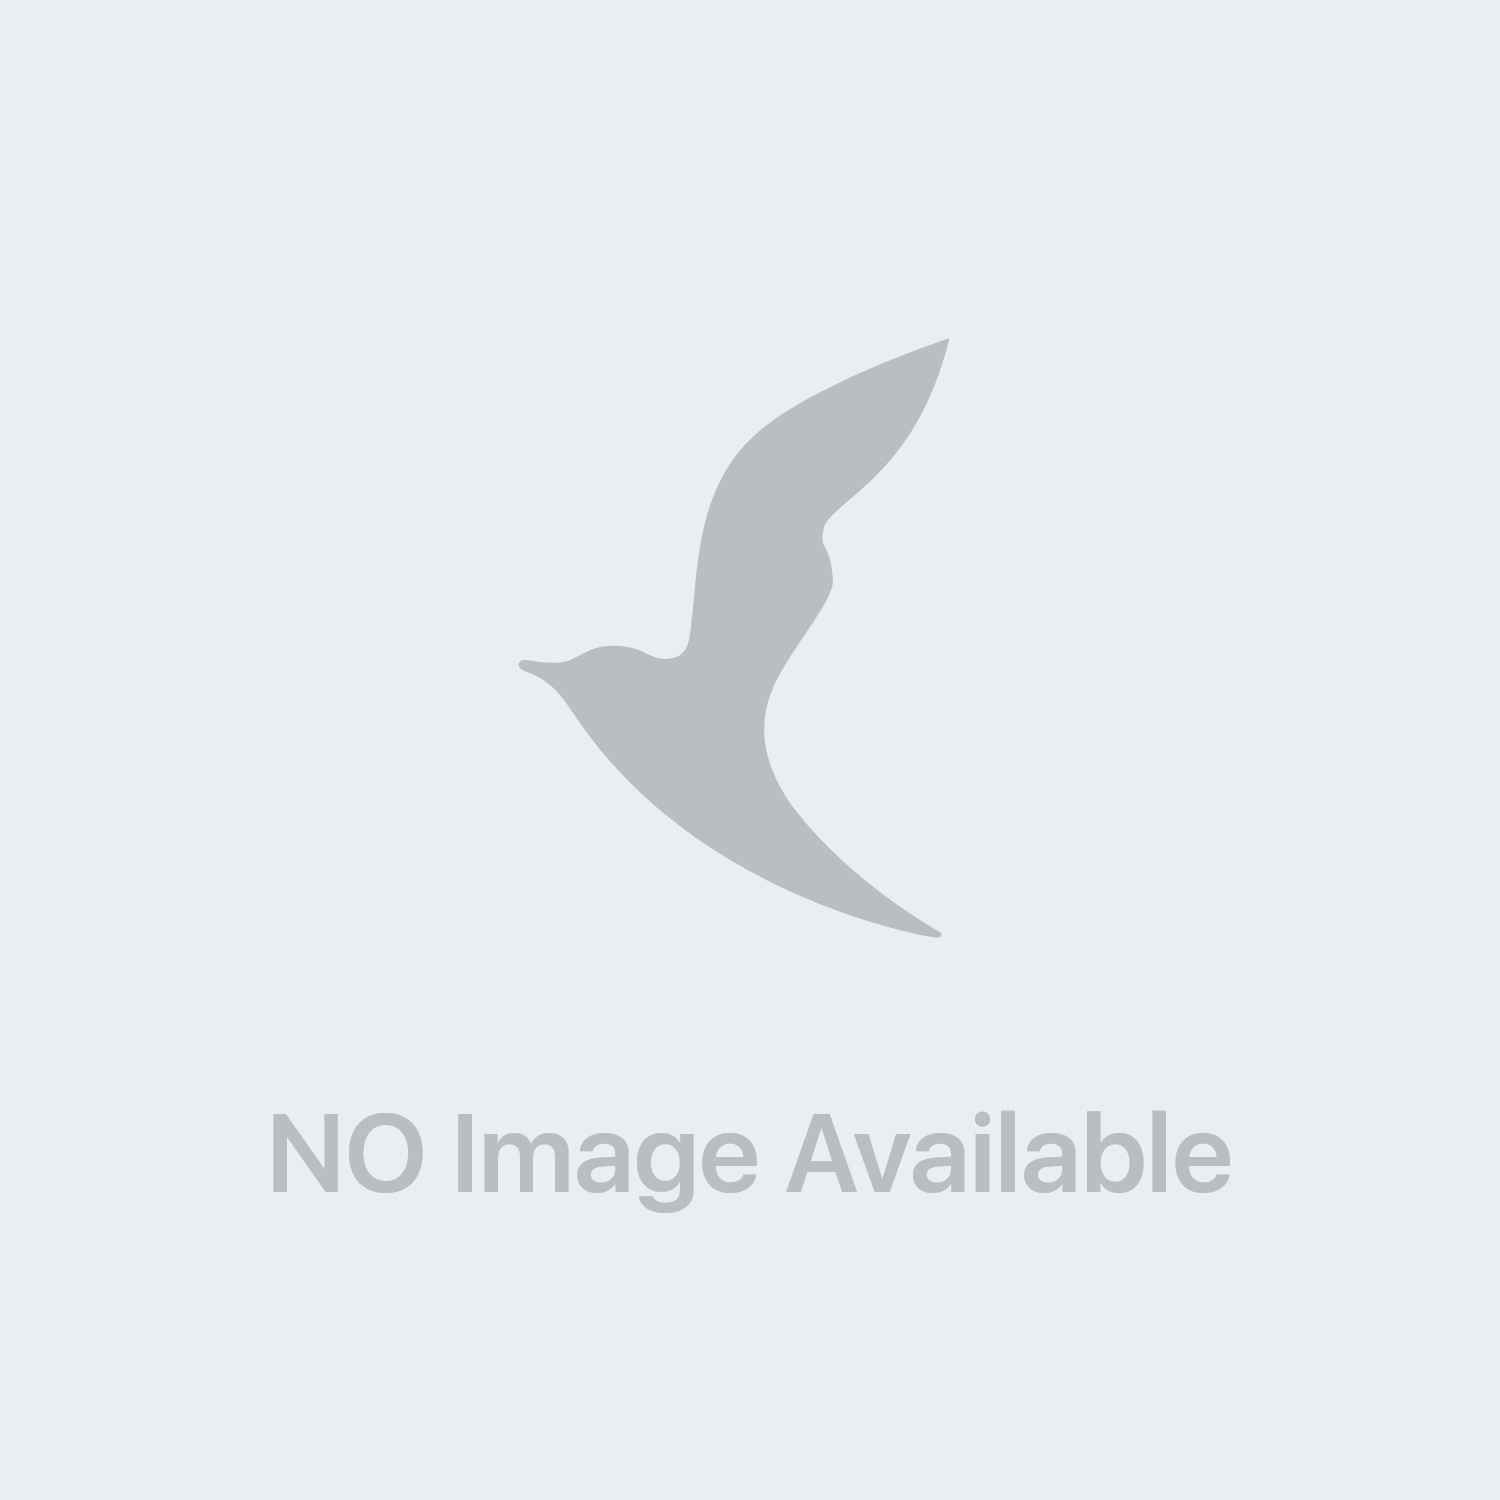 Pergam Discromil Plus Crema Antimacchie Schiarente 40 Ml